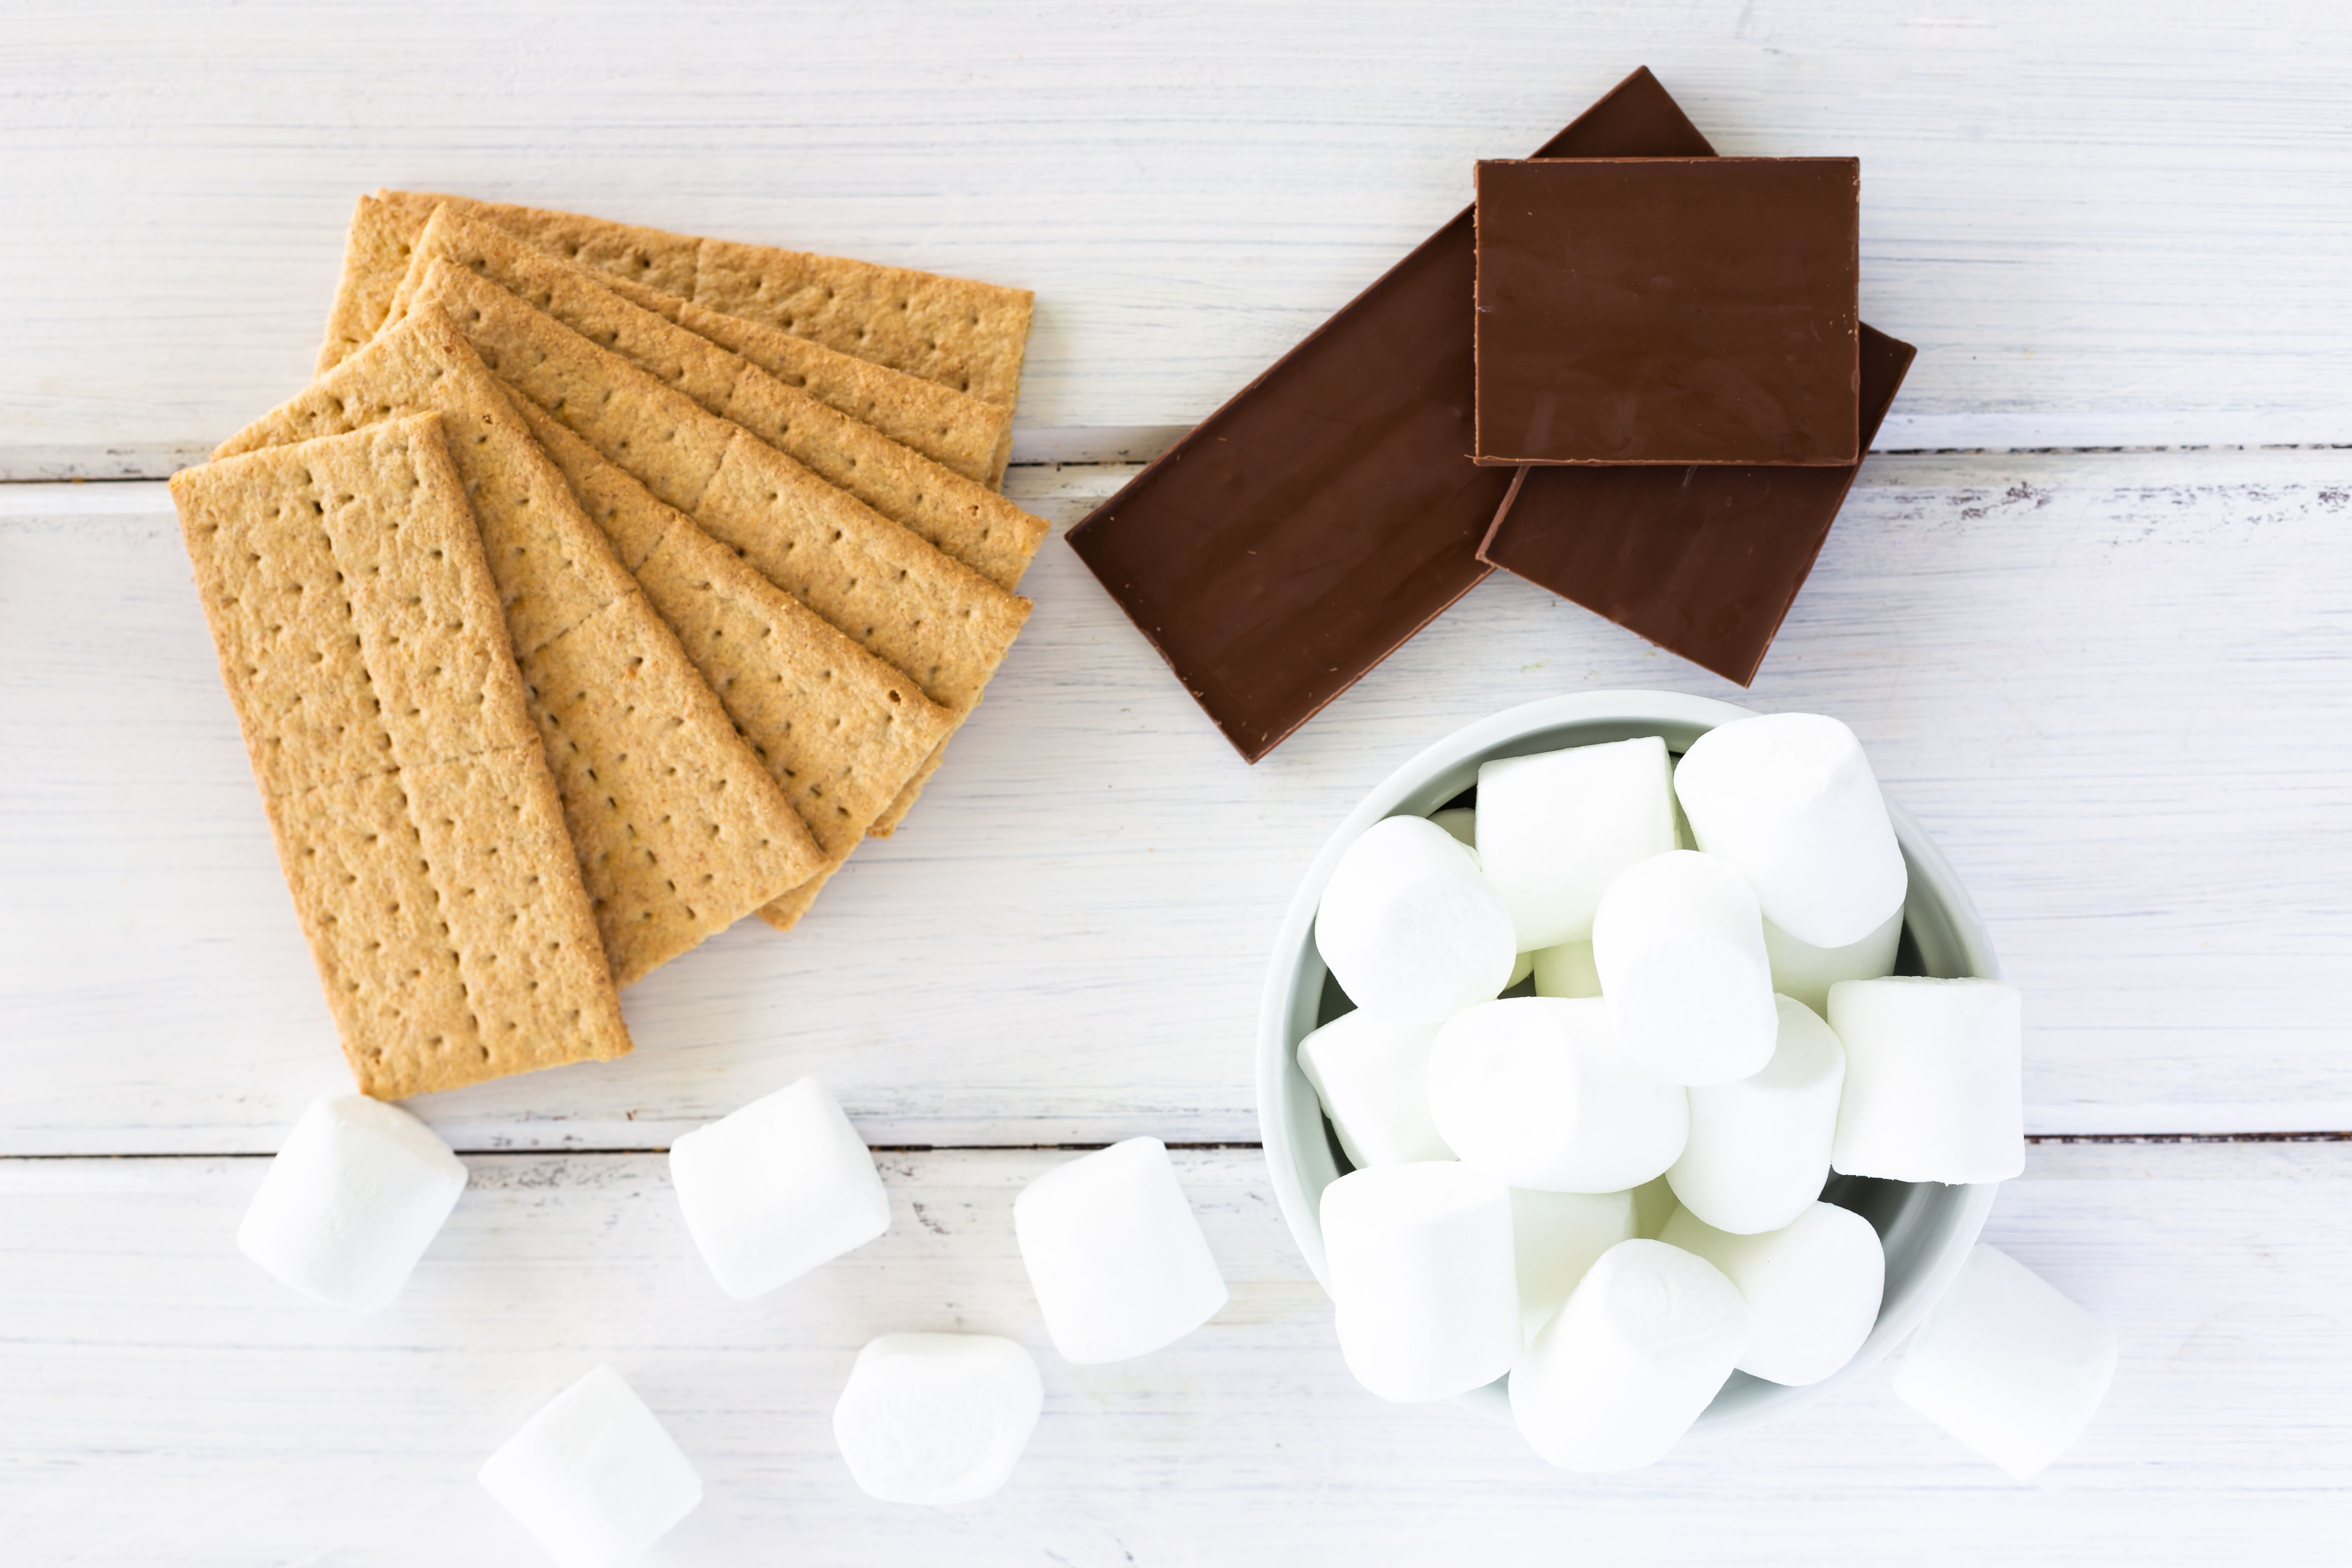 Ingredients for Baked S'mores